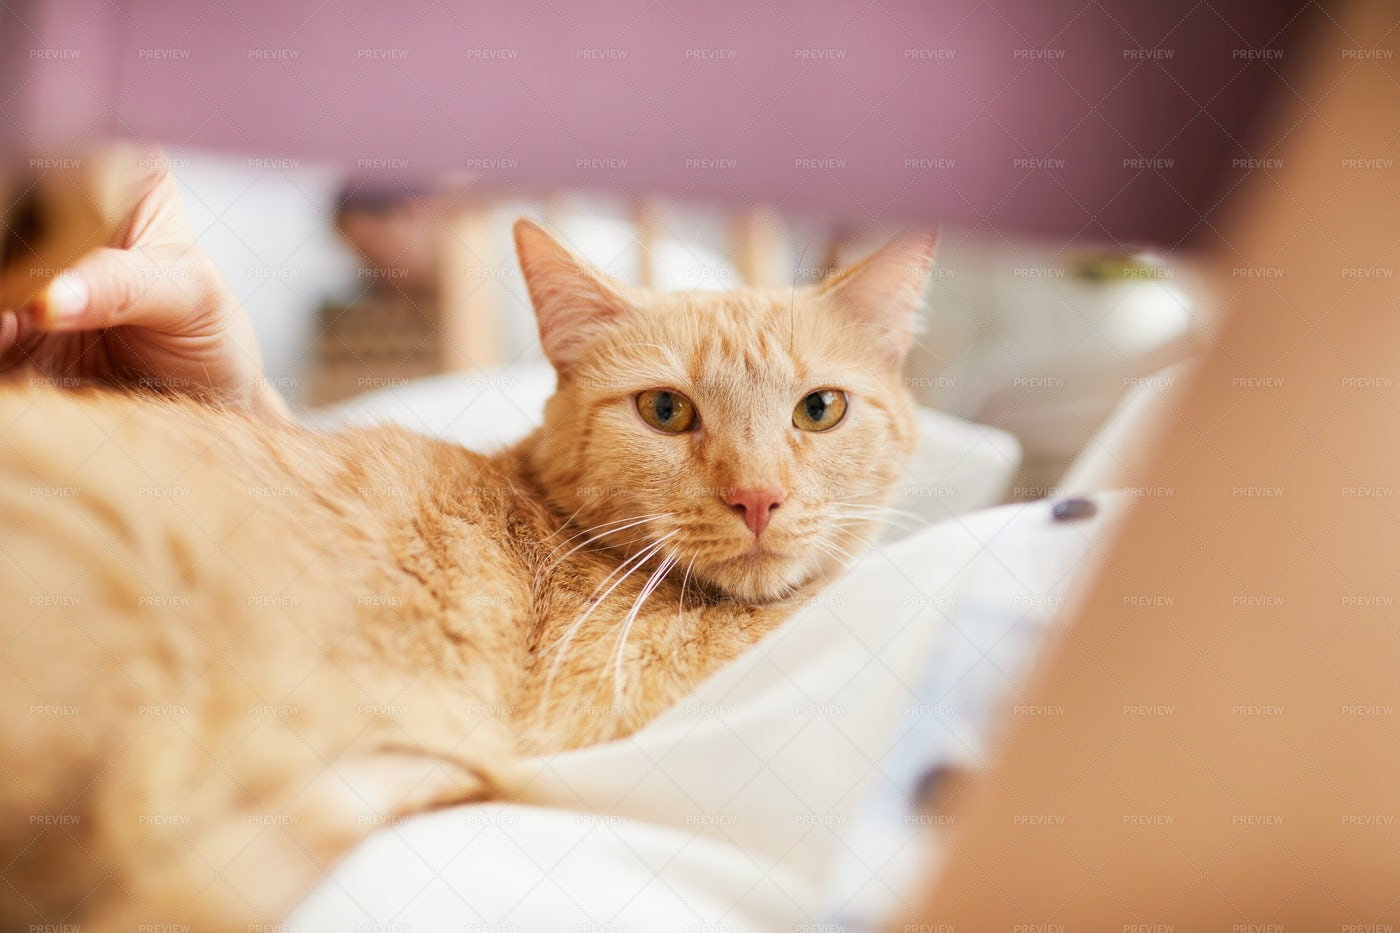 Shorthaired Ginger Cat Looking At...: Stock Photos